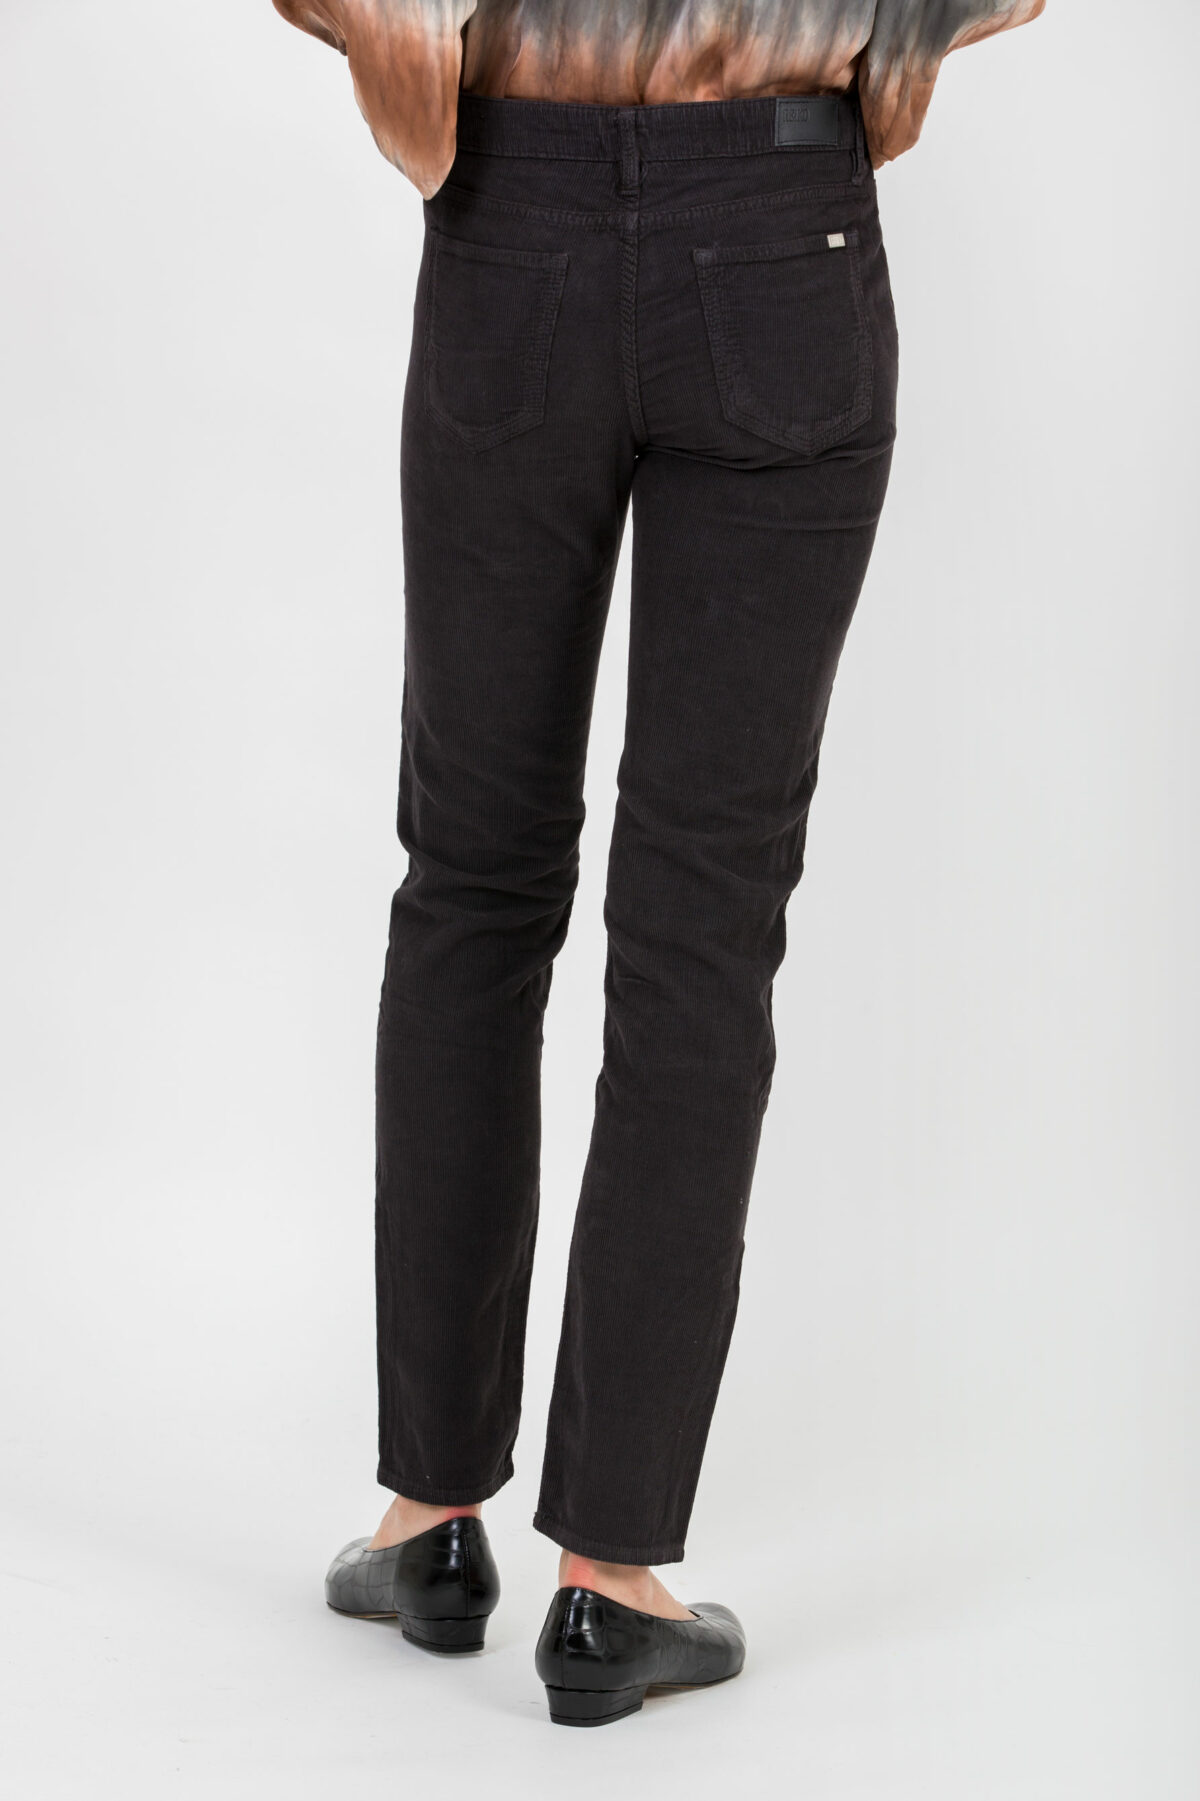 nelly-skinny-mid-rise-carbone-trousers-reiko-matchboxathens